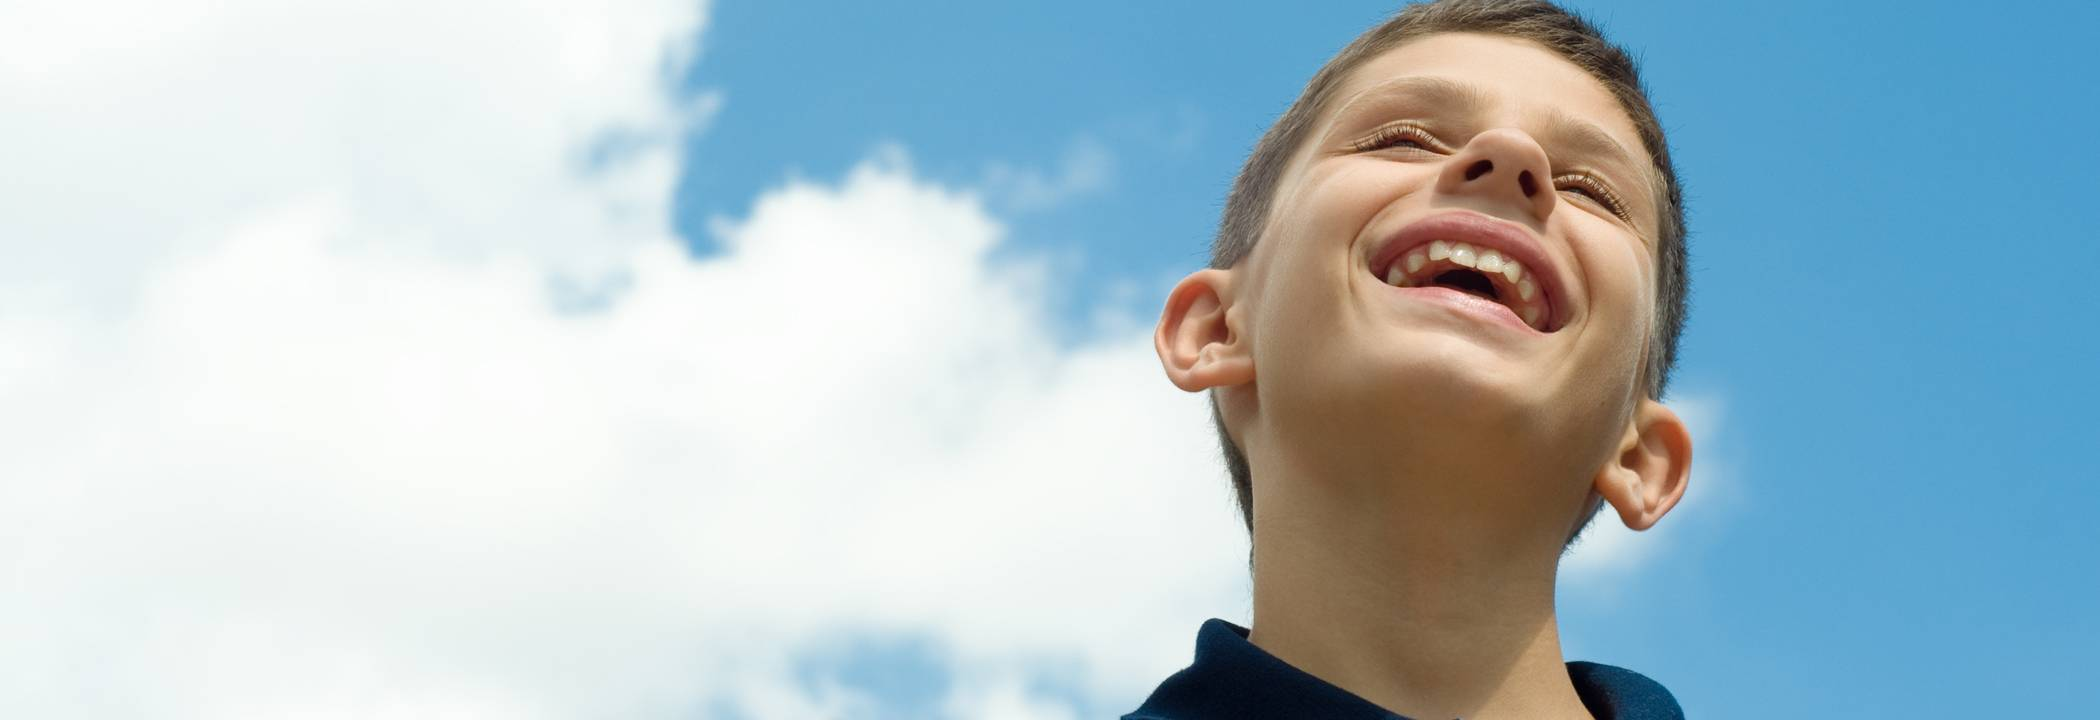 white_boy_smiling_blue_sky_on_rt_CROP